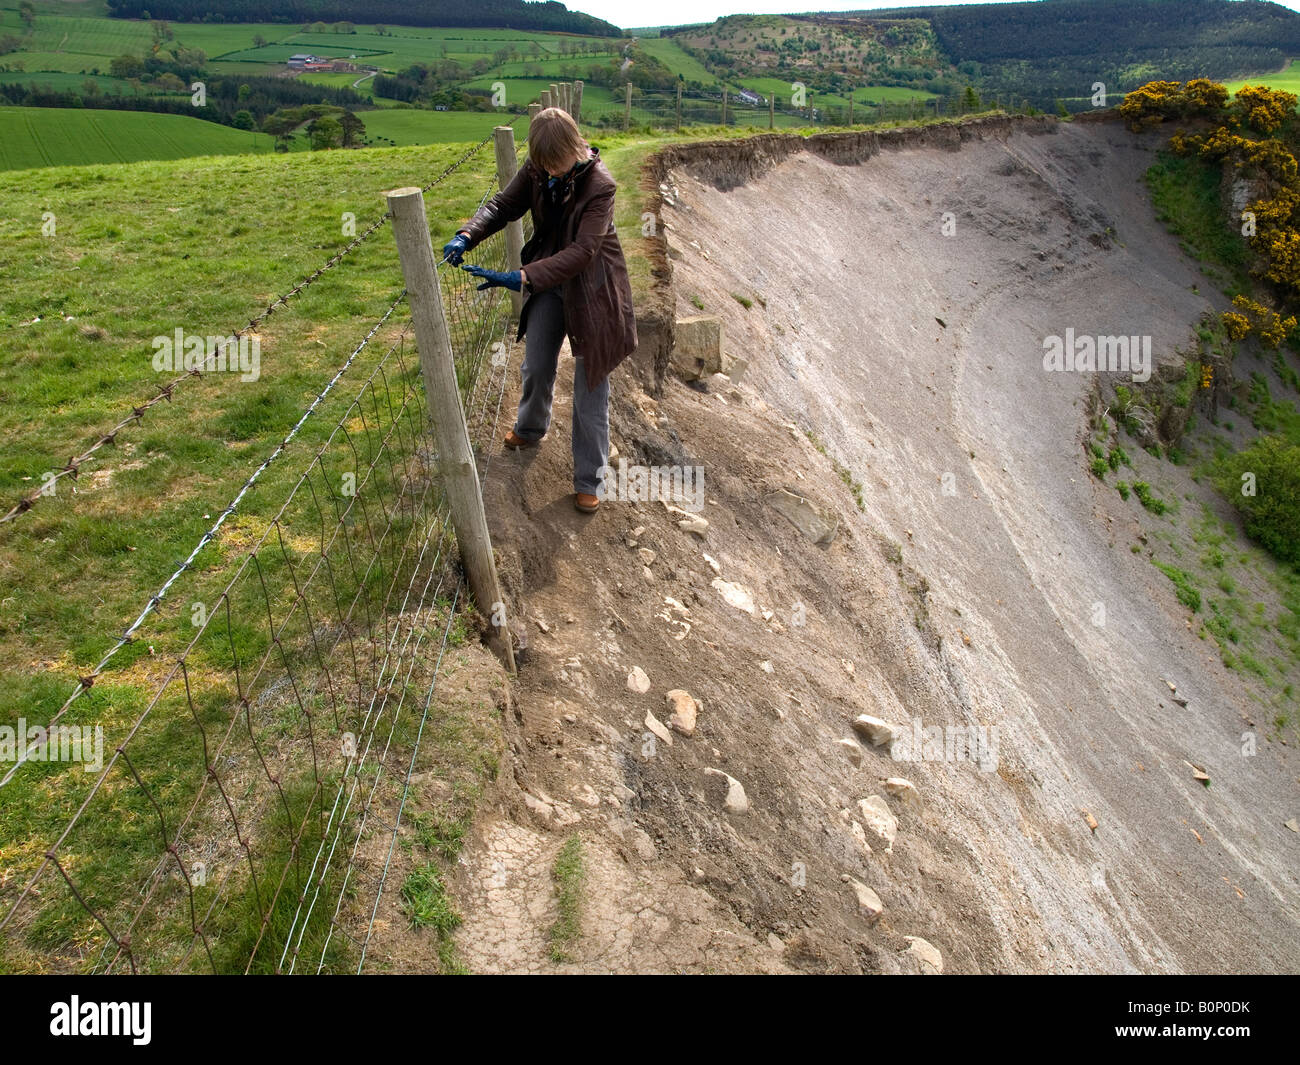 Woman negotiating a difficult country footpath undermined by a landslip - Stock Image